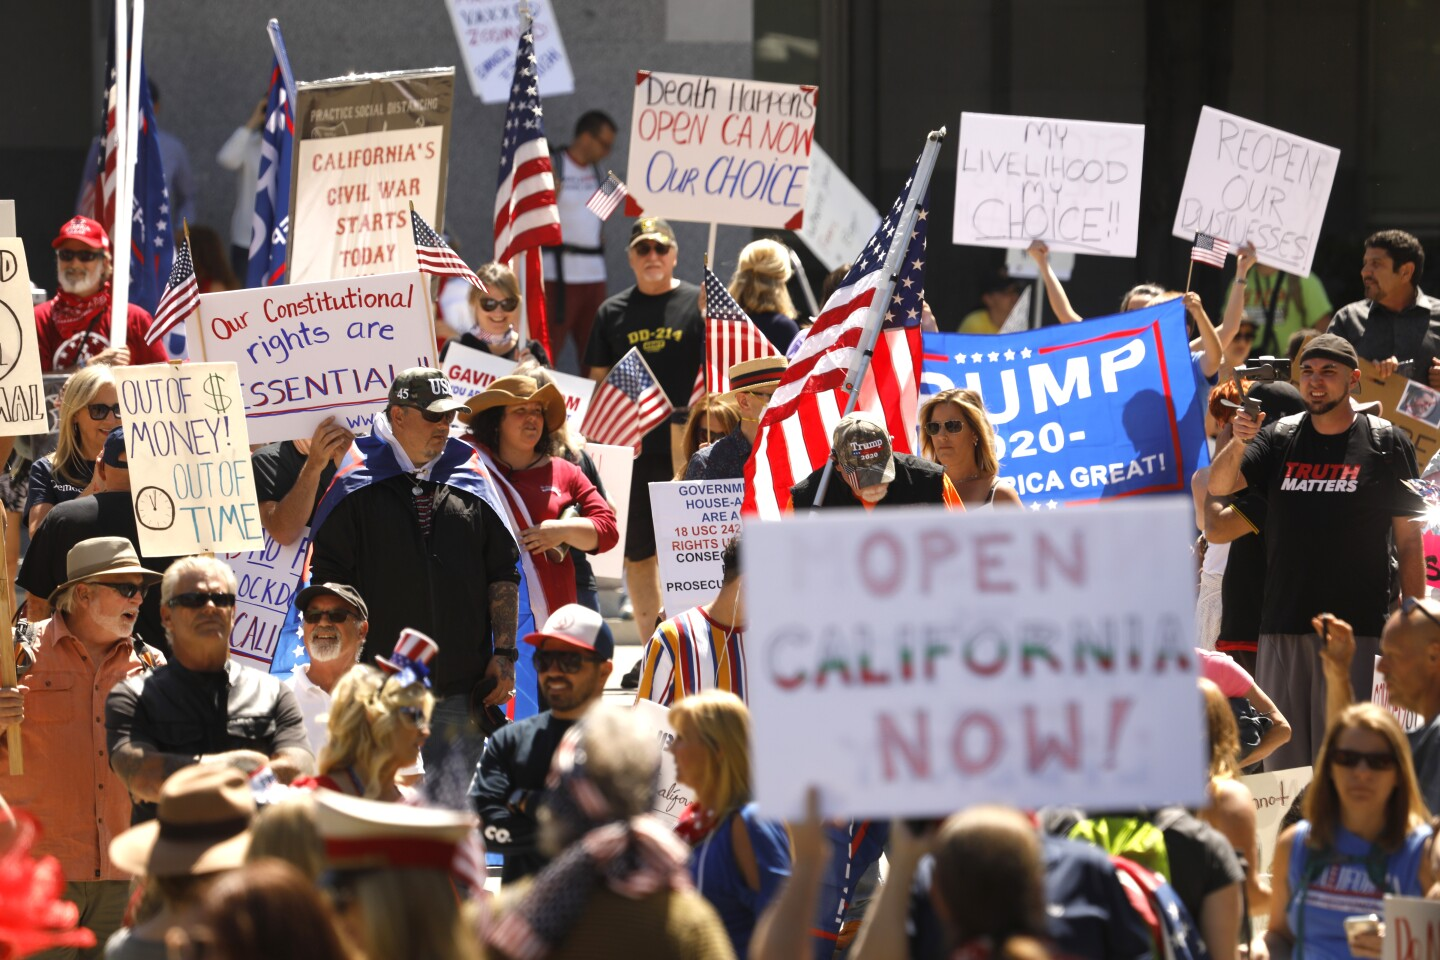 SACRAMENTO,CALIFORNIA--MAY 1, 2020-- Over 1,500 people attending a rally at the capitol in Sacramento asking for the civil liberties and the opening of the economy, closed due to the coronavirus. (Carolyn Cole/Los Angeles Times)